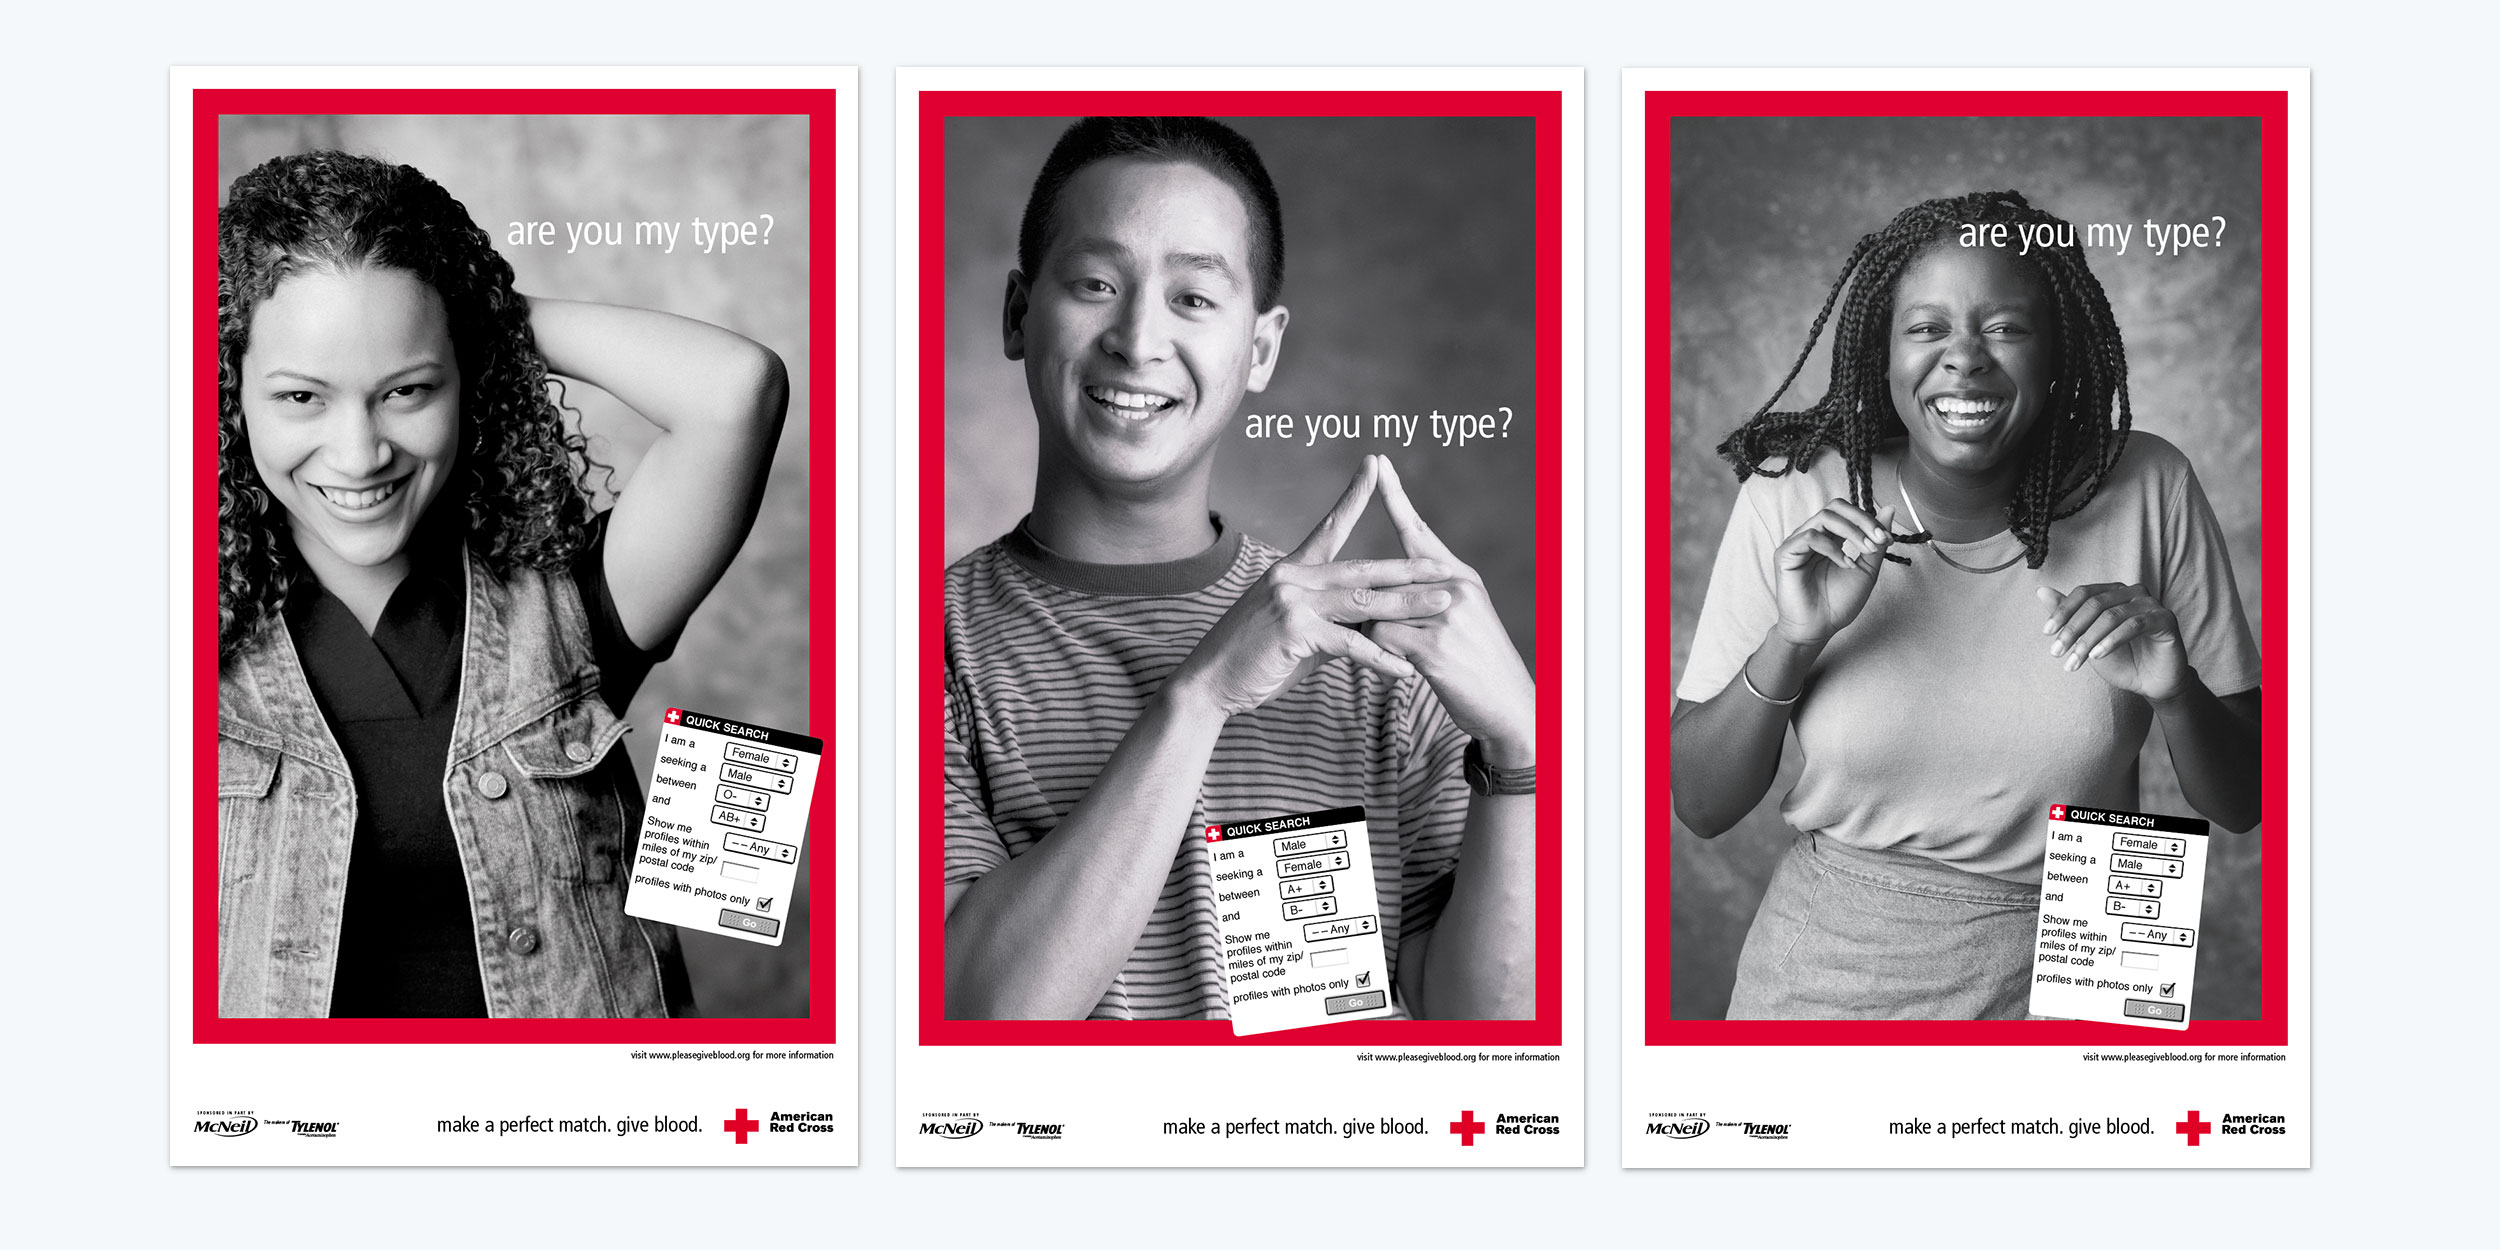 non-profit-american-red-cross-blood-donor-campaign-posters